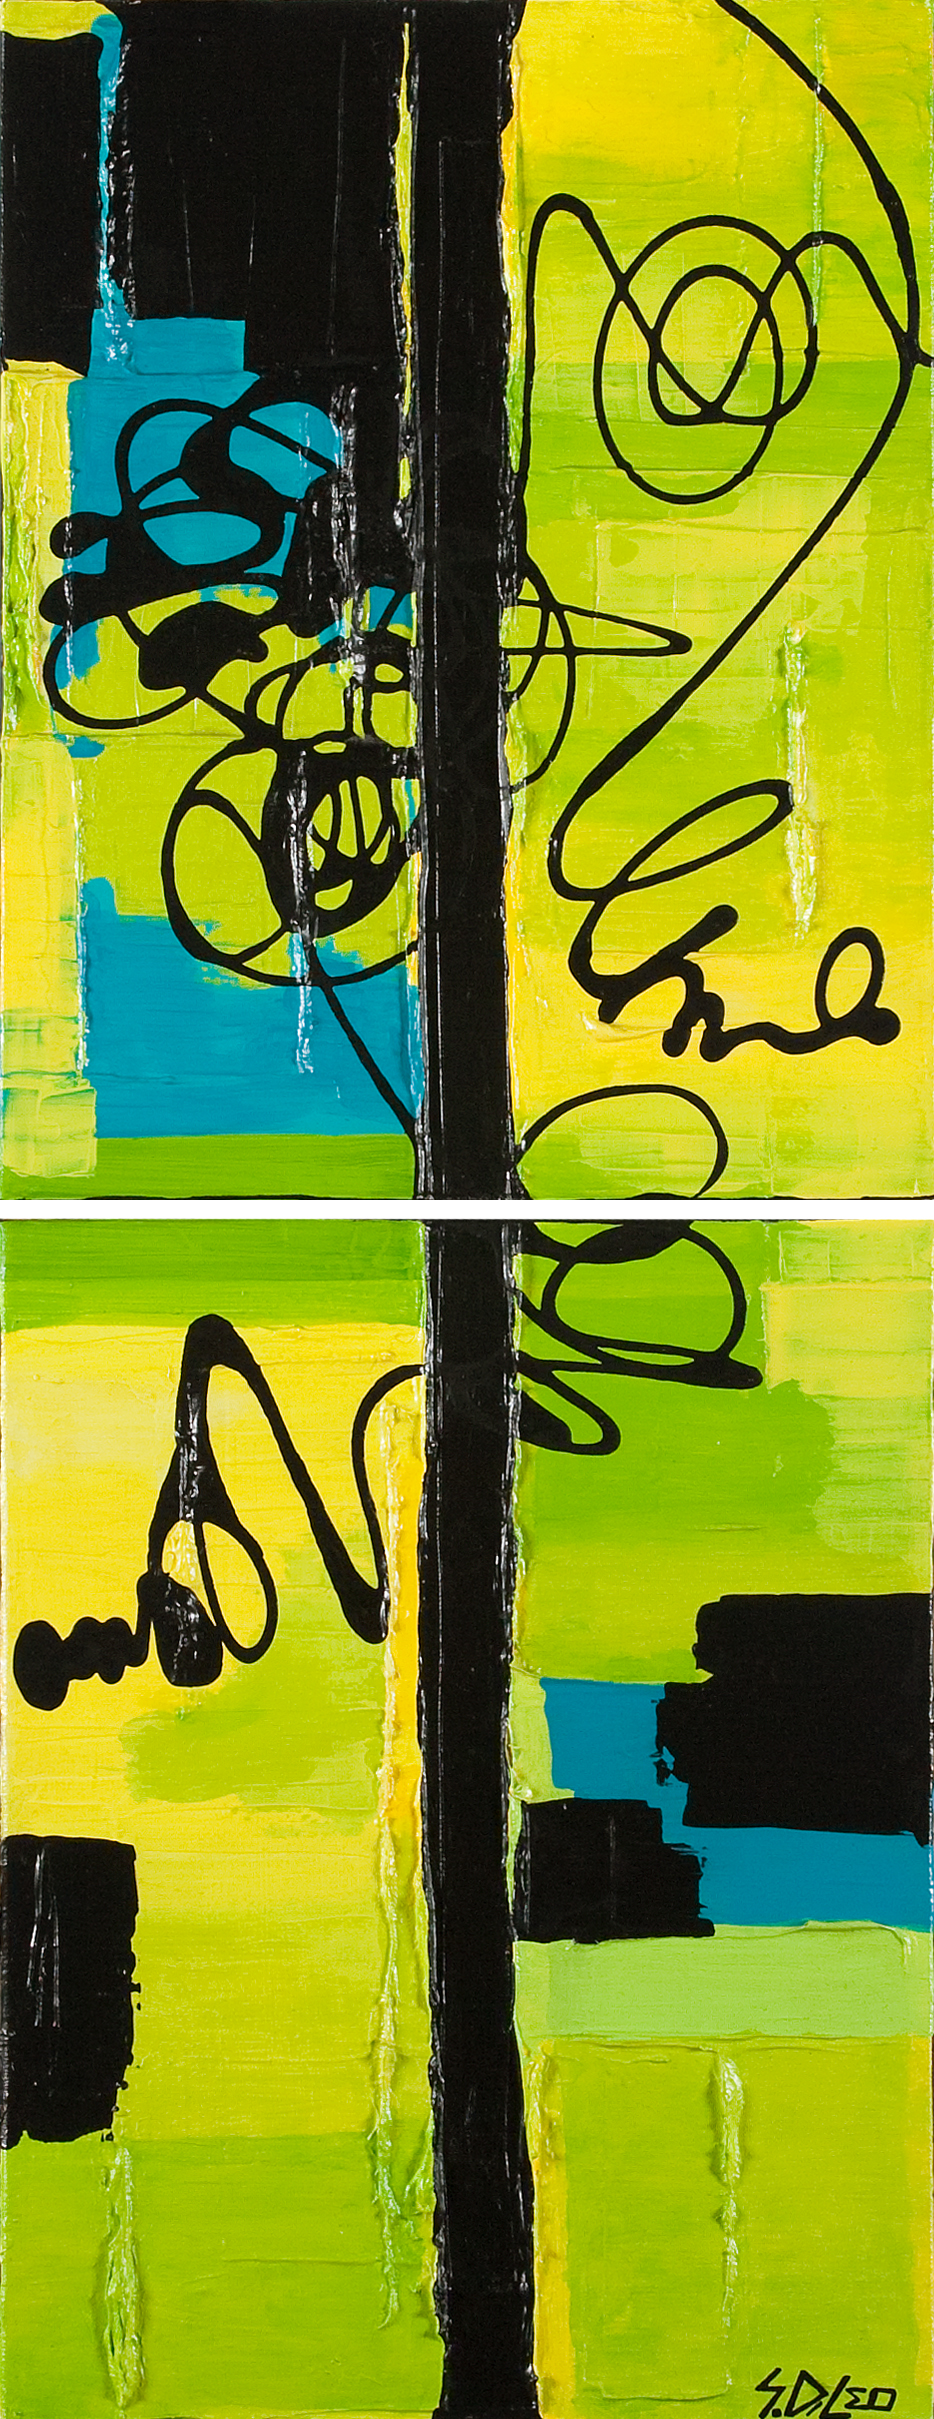 "vert 14"" x 36"" acrylic on canvas  SOLD"